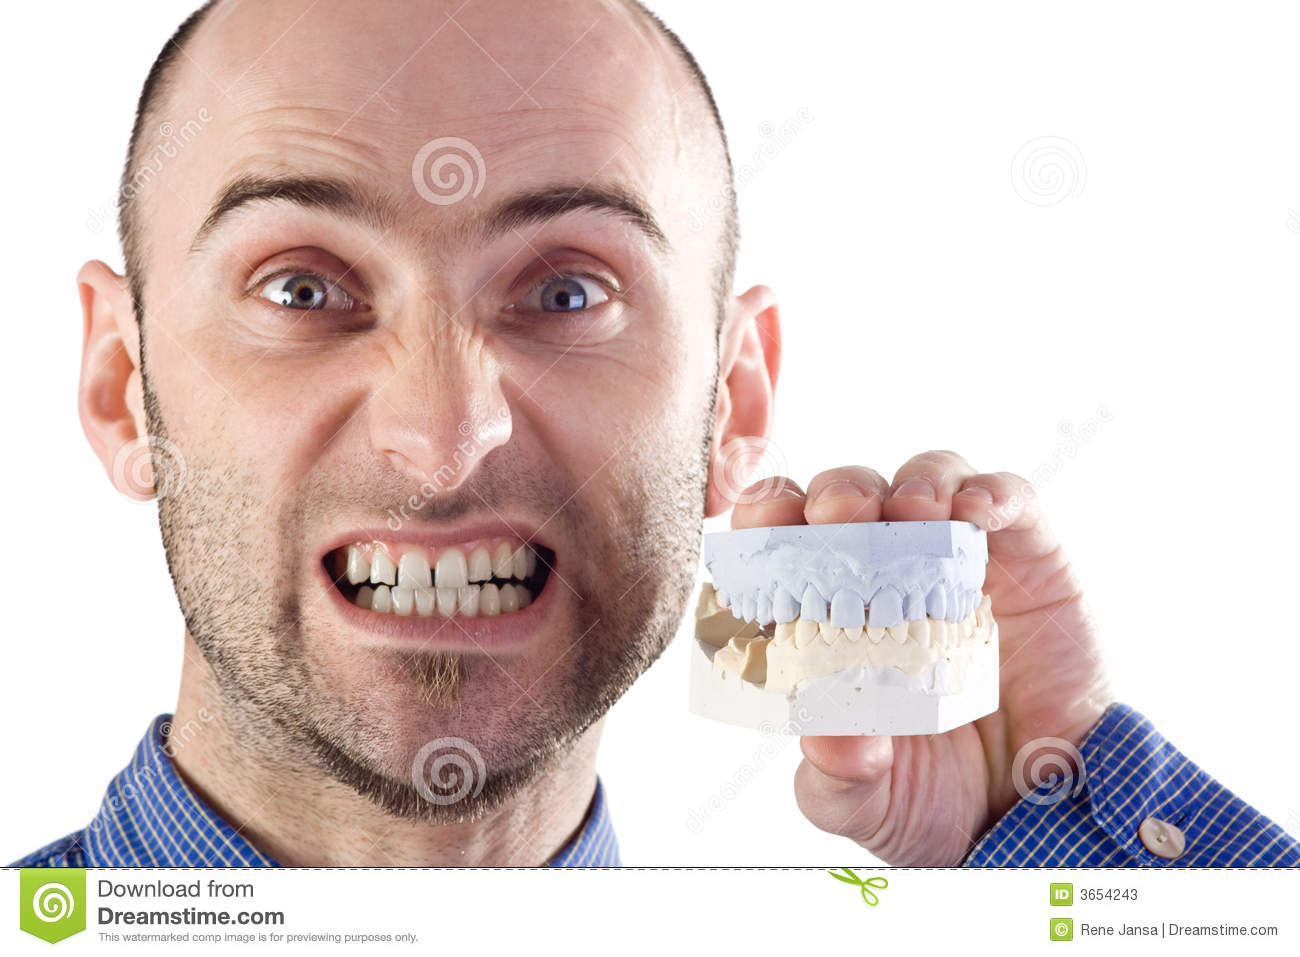 Fake Teeth Stock Photos - Image: 3654243